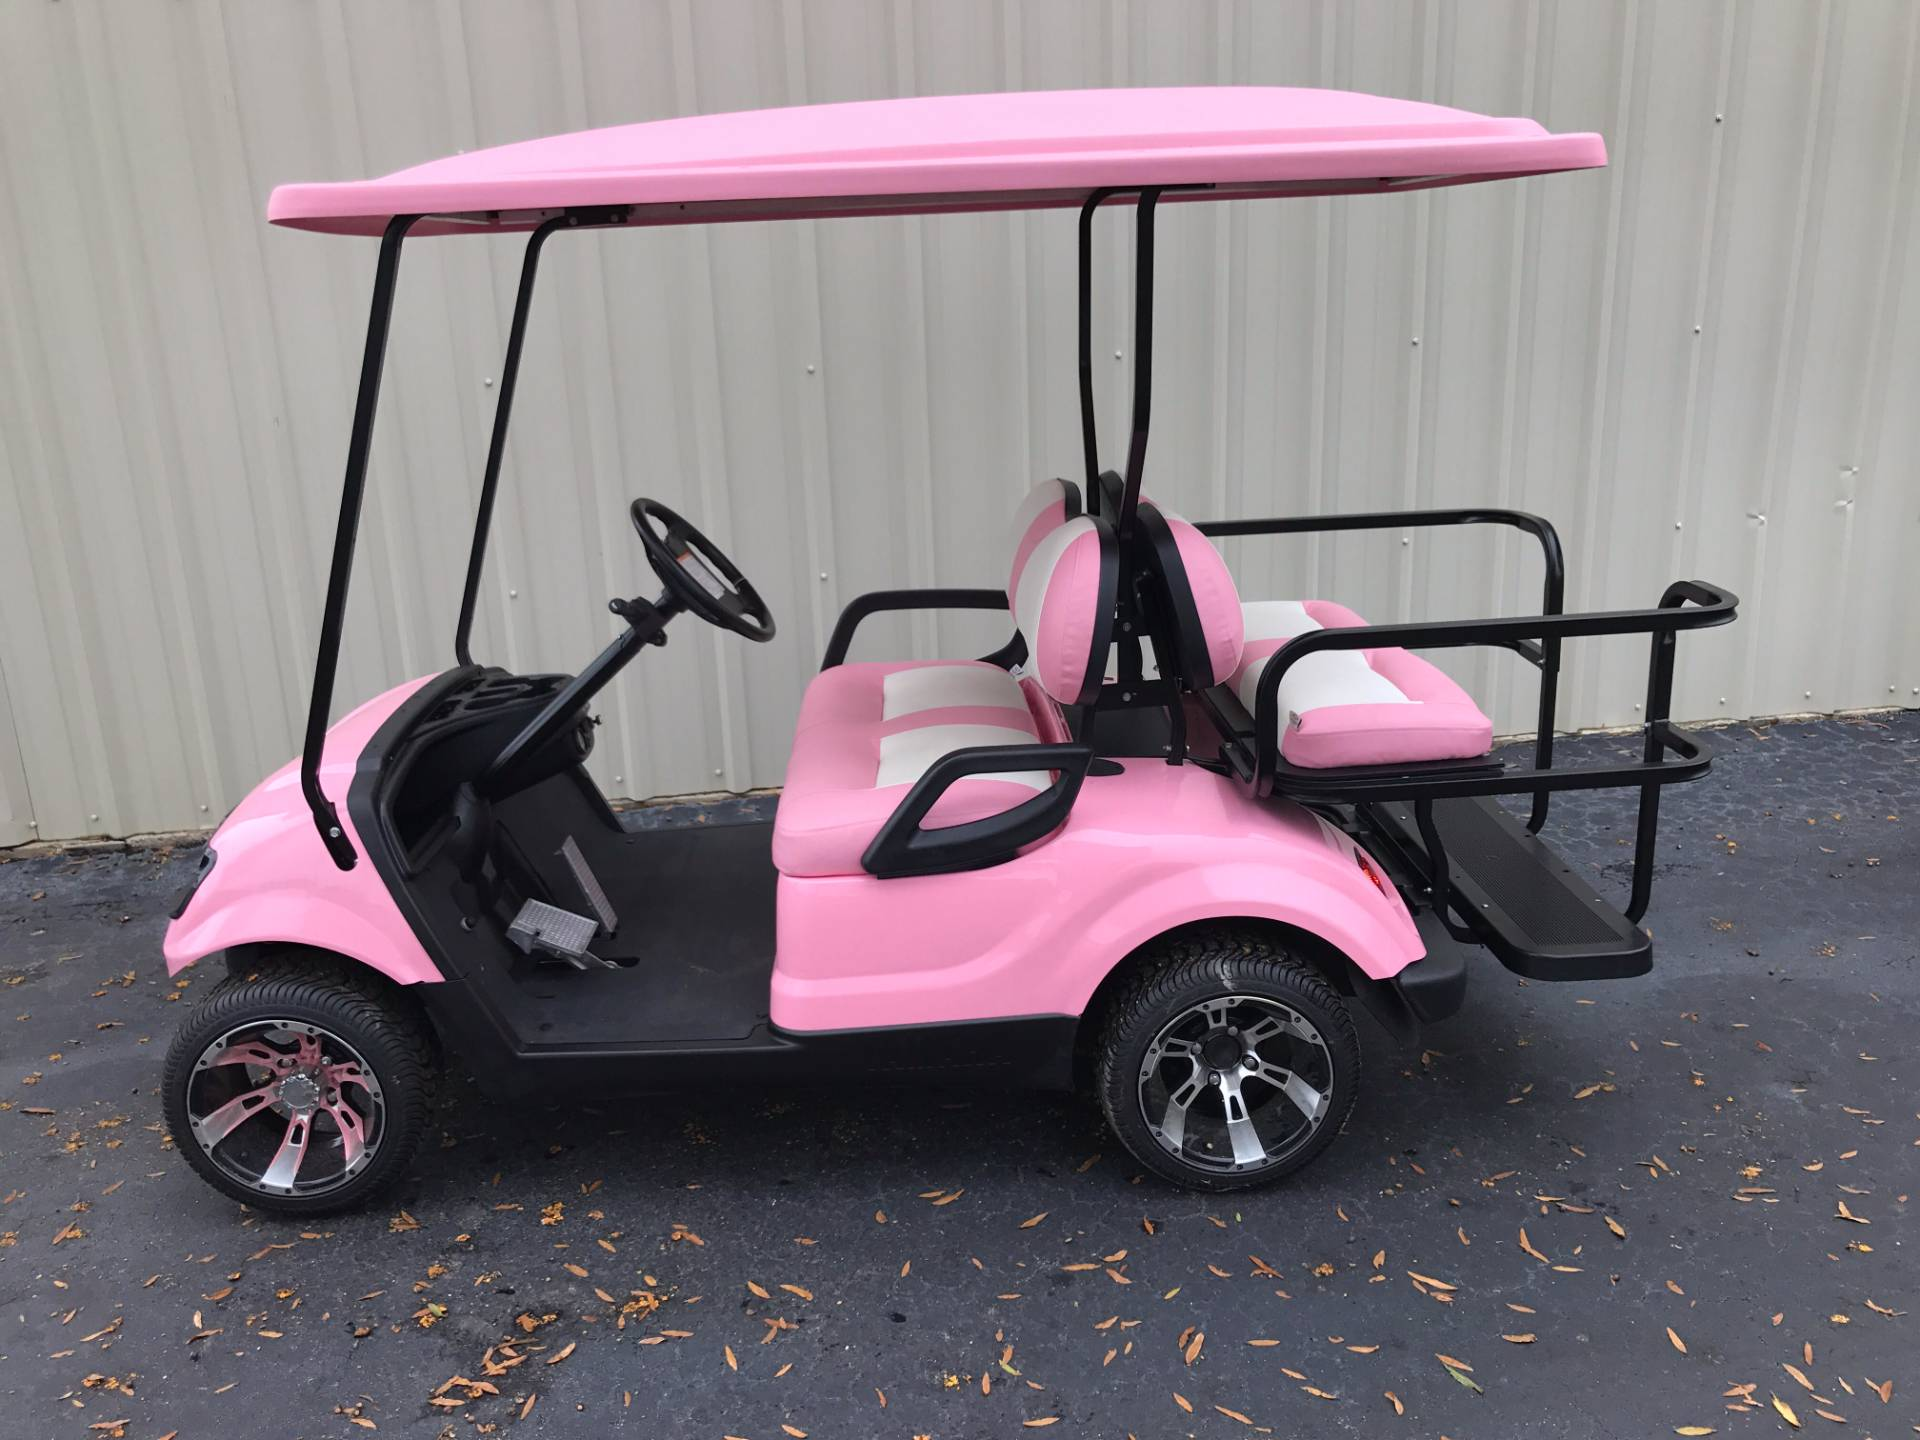 New 2016 yamaha the drive ptv electric golf carts in for Yamaha golf cart gas vs electric